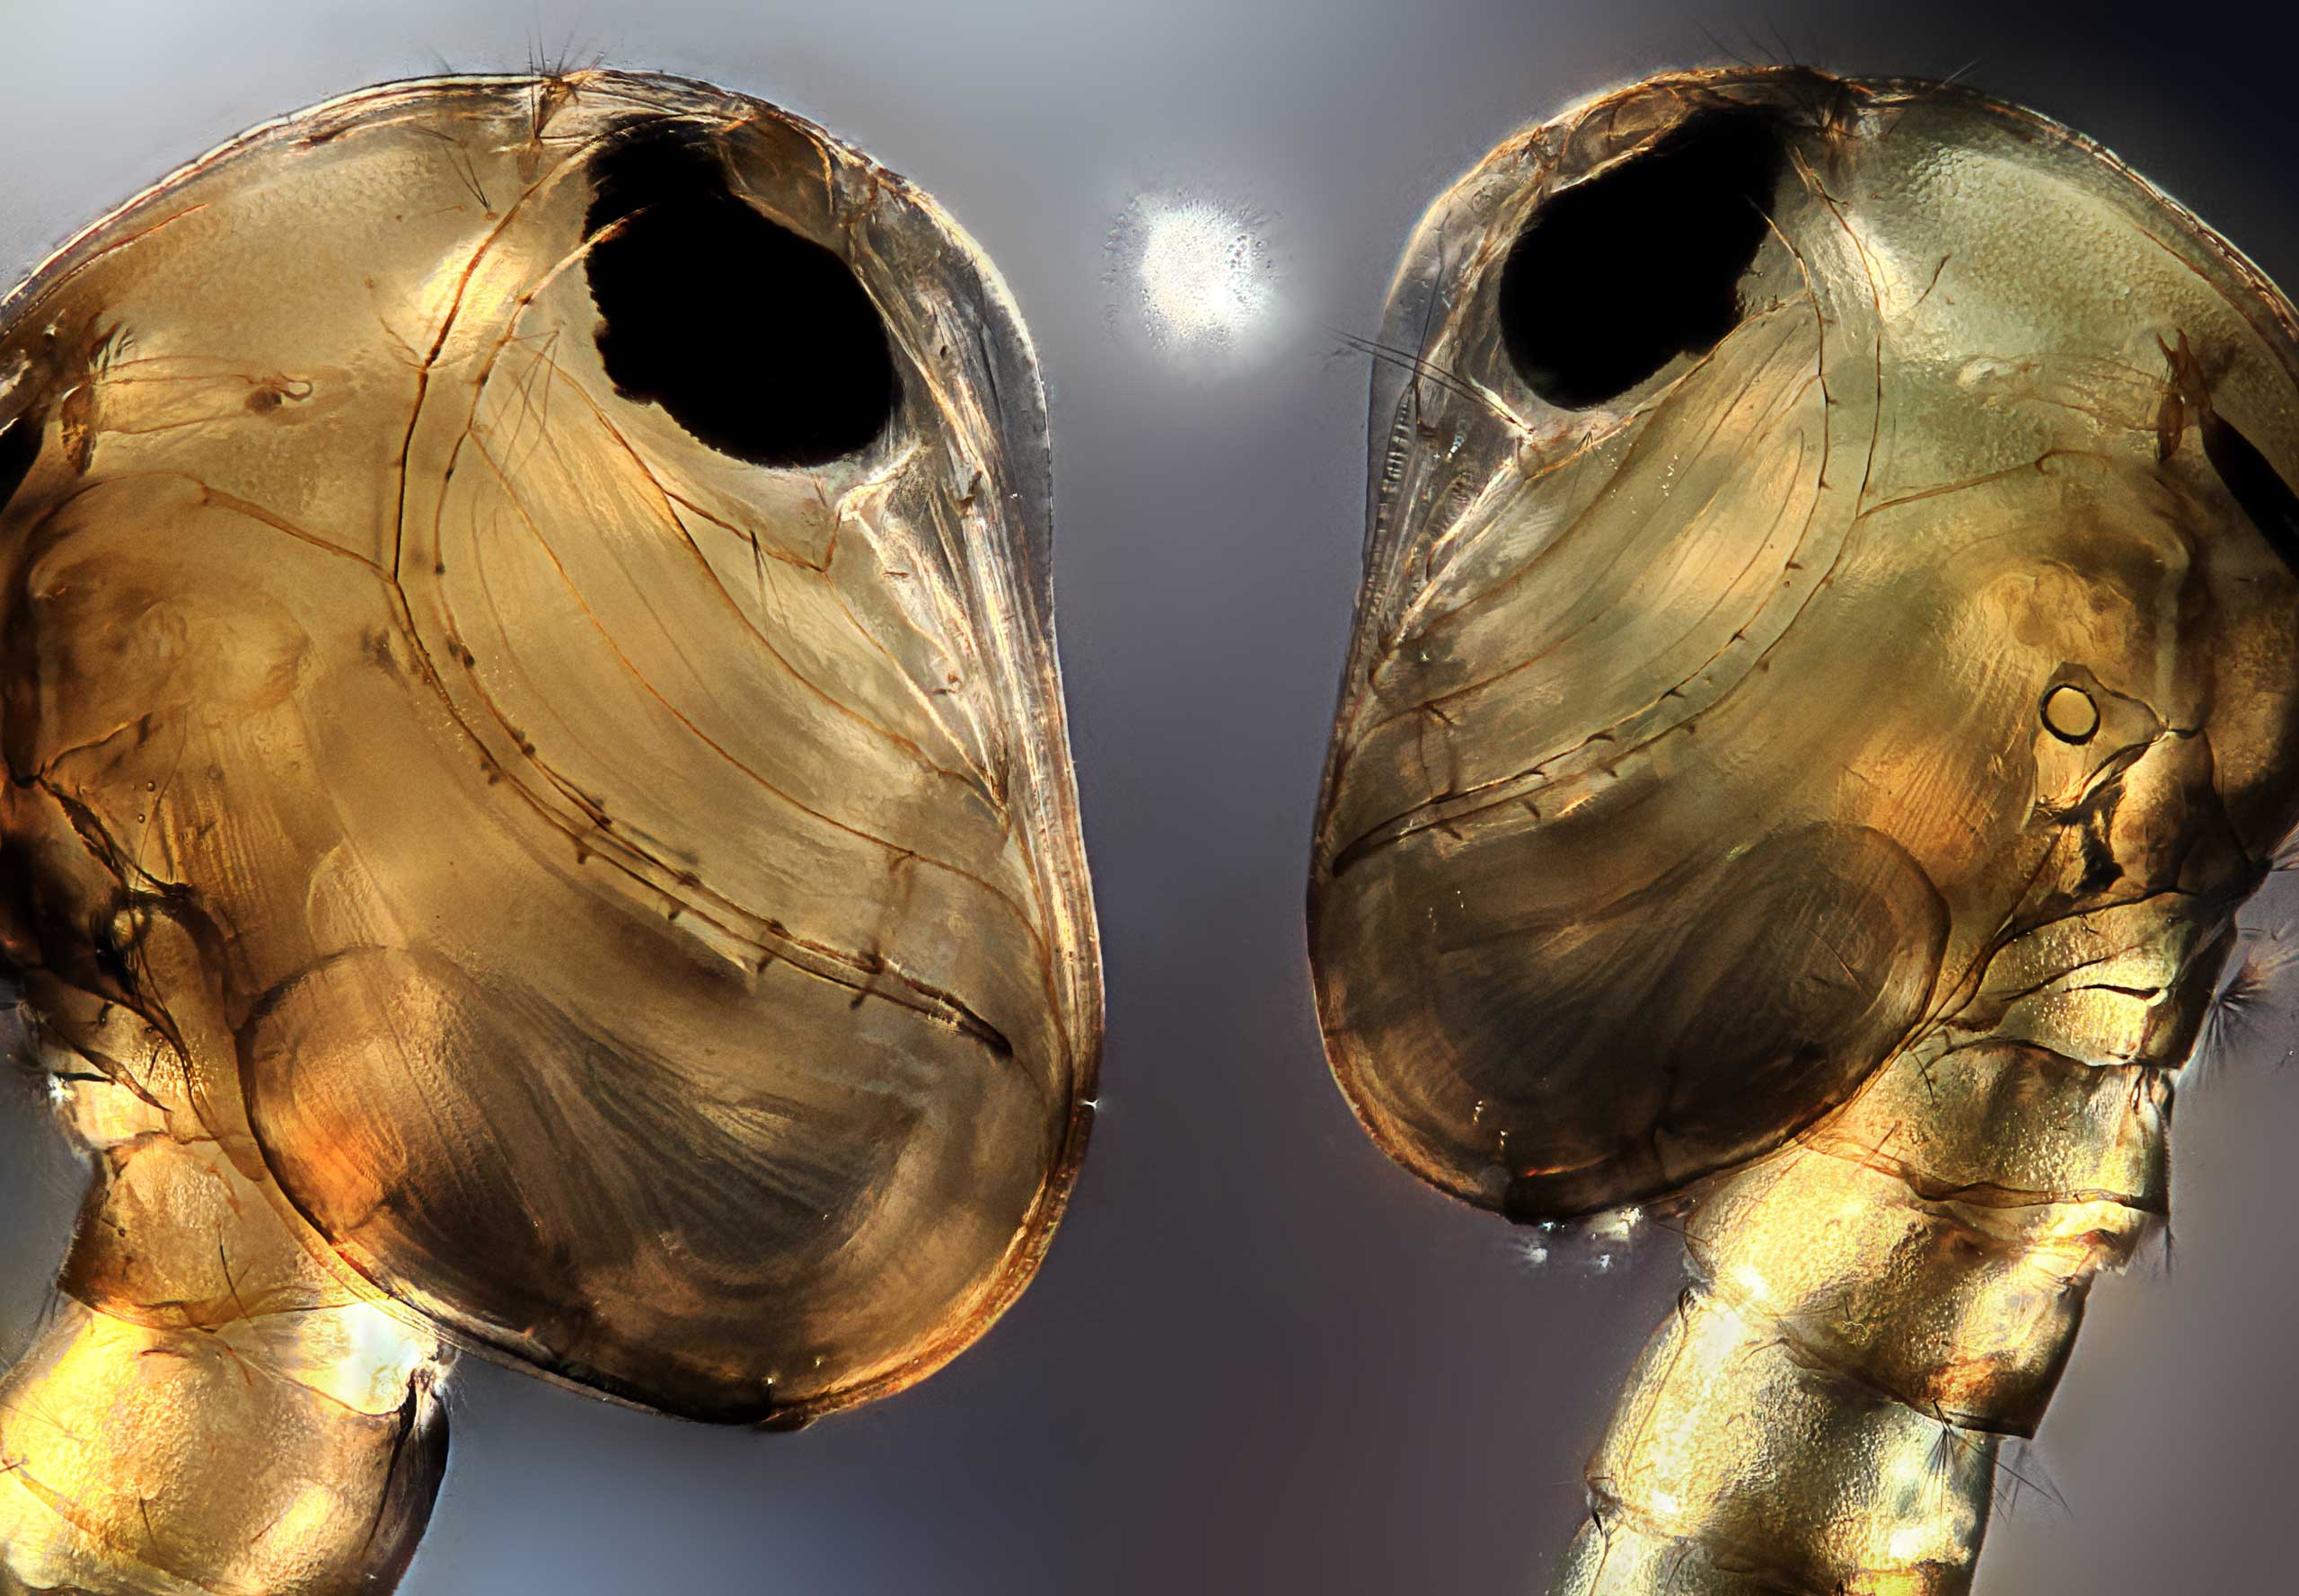 Two mosquito pupae.